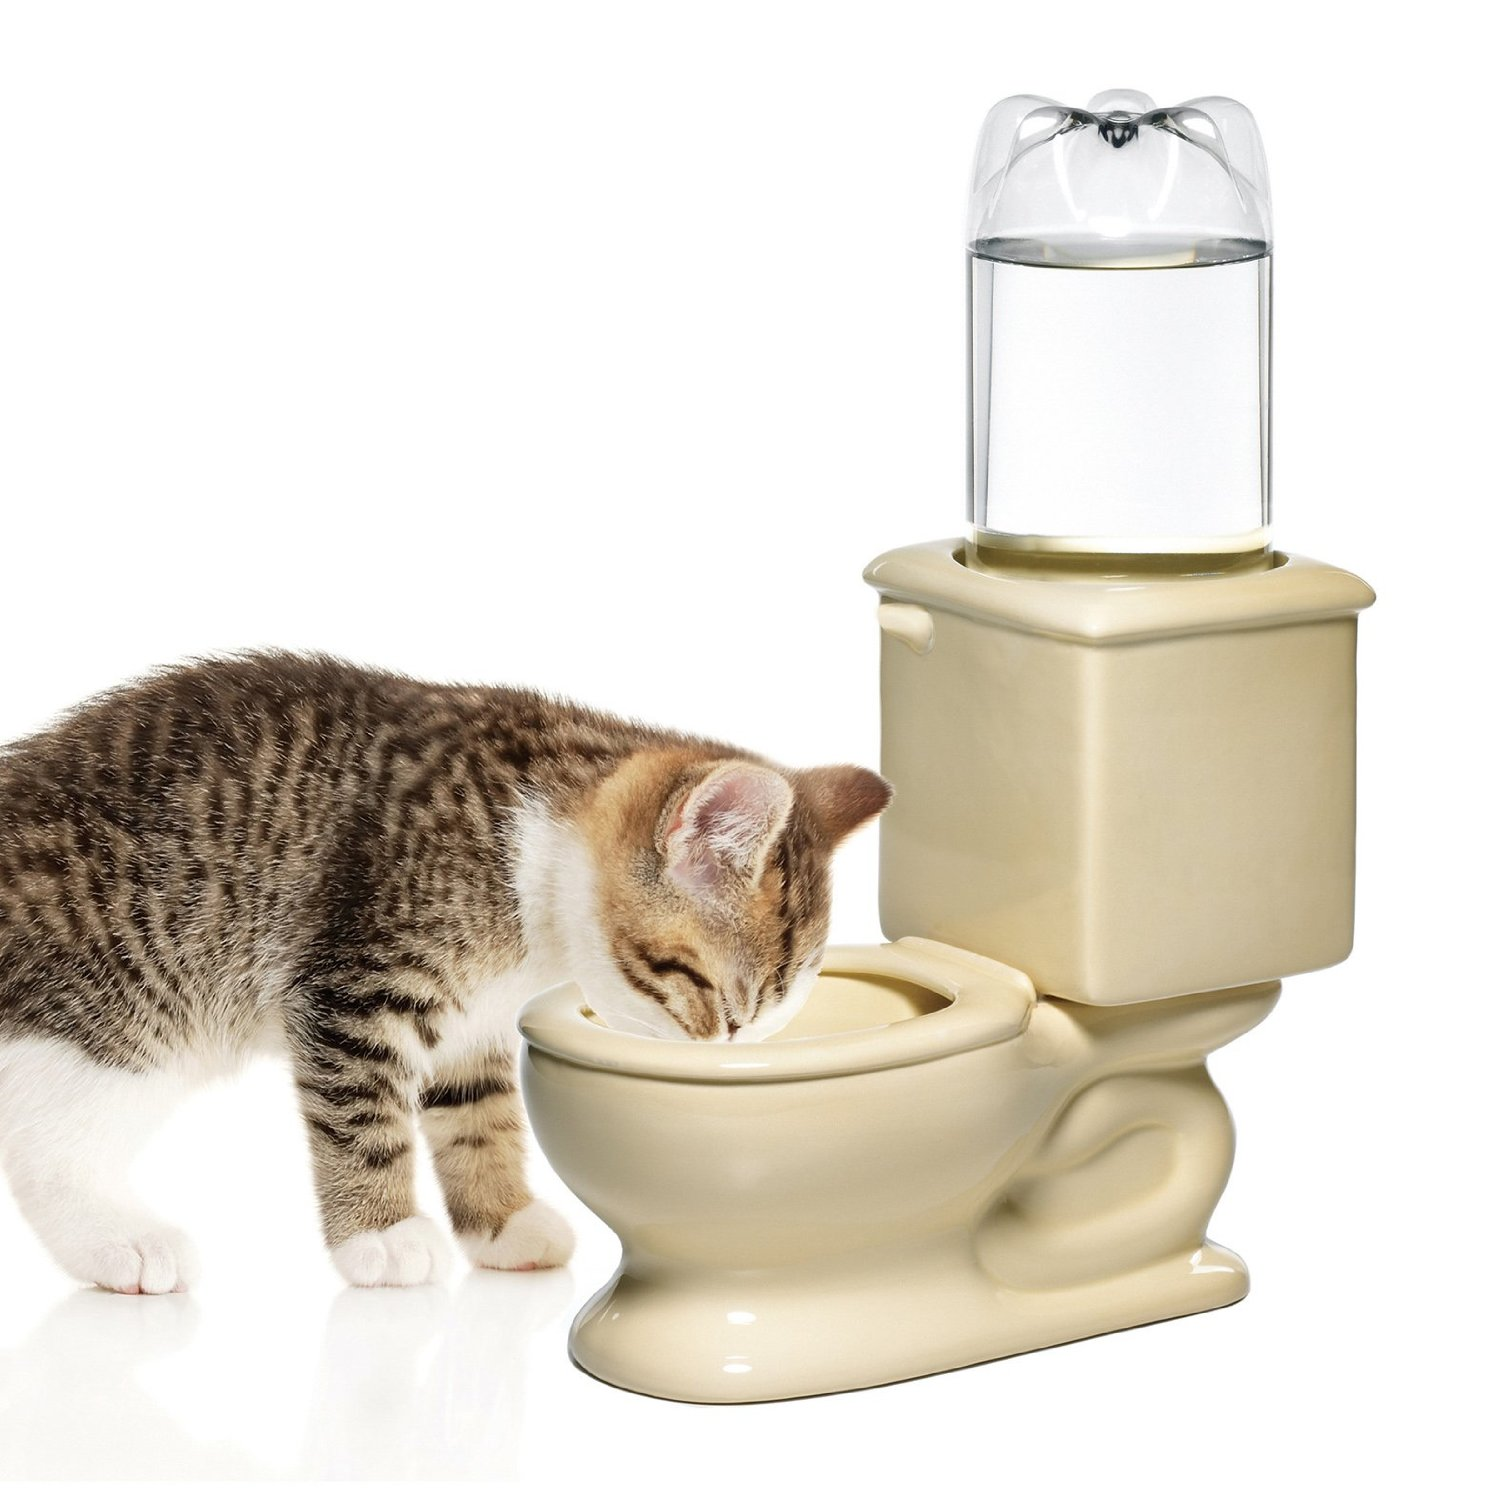 Water Bowl for Cat